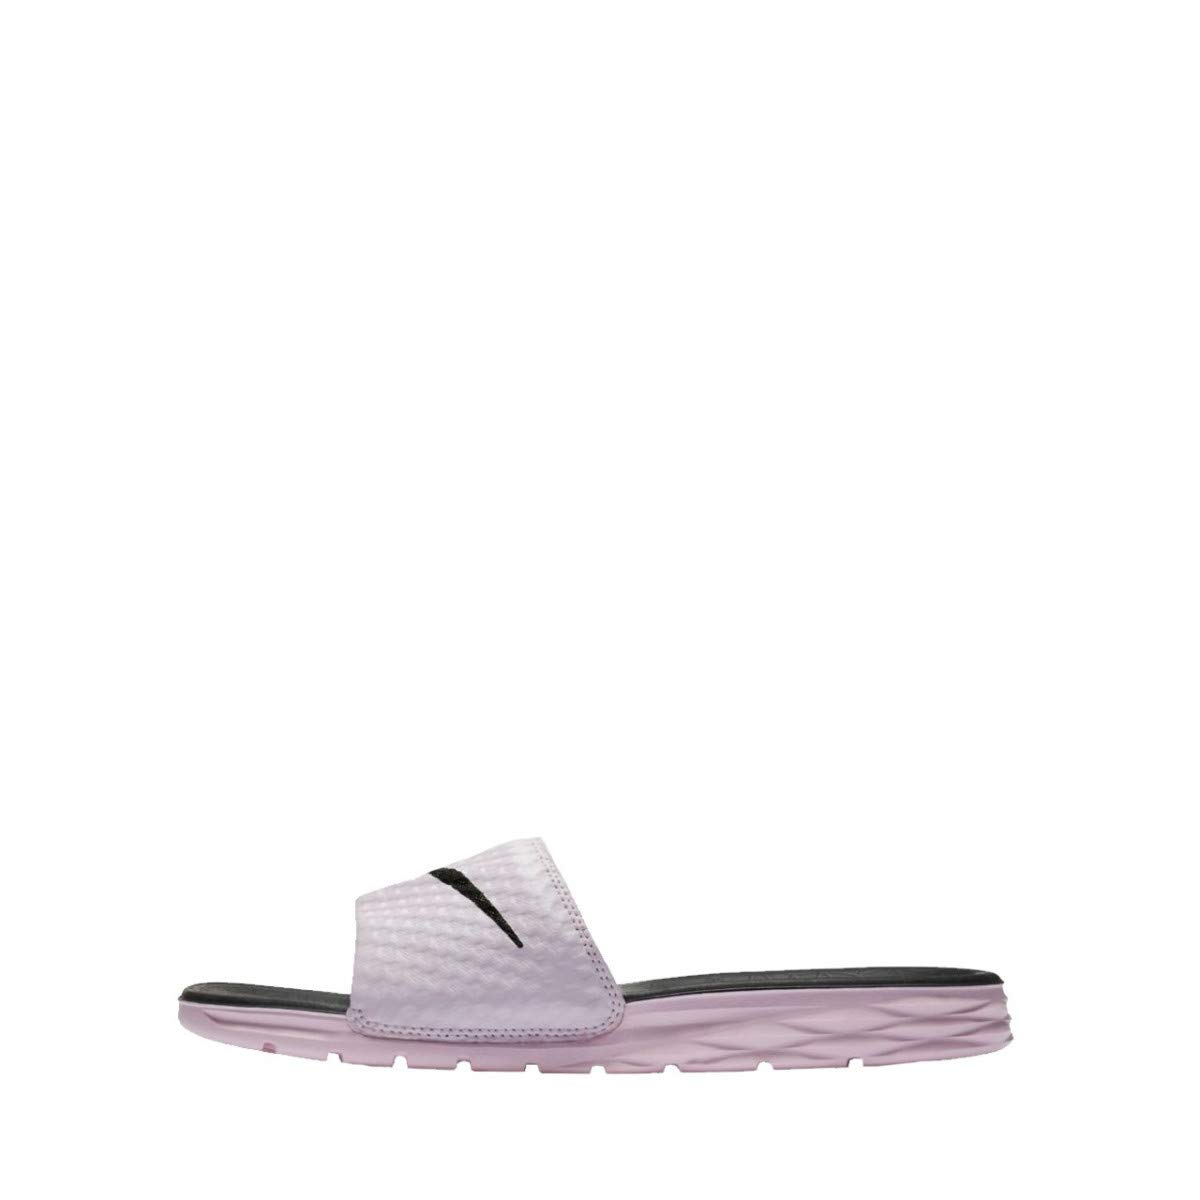 7315ee782 Galleon - Nike Women s Benassi Solarsoft Slide Sandal